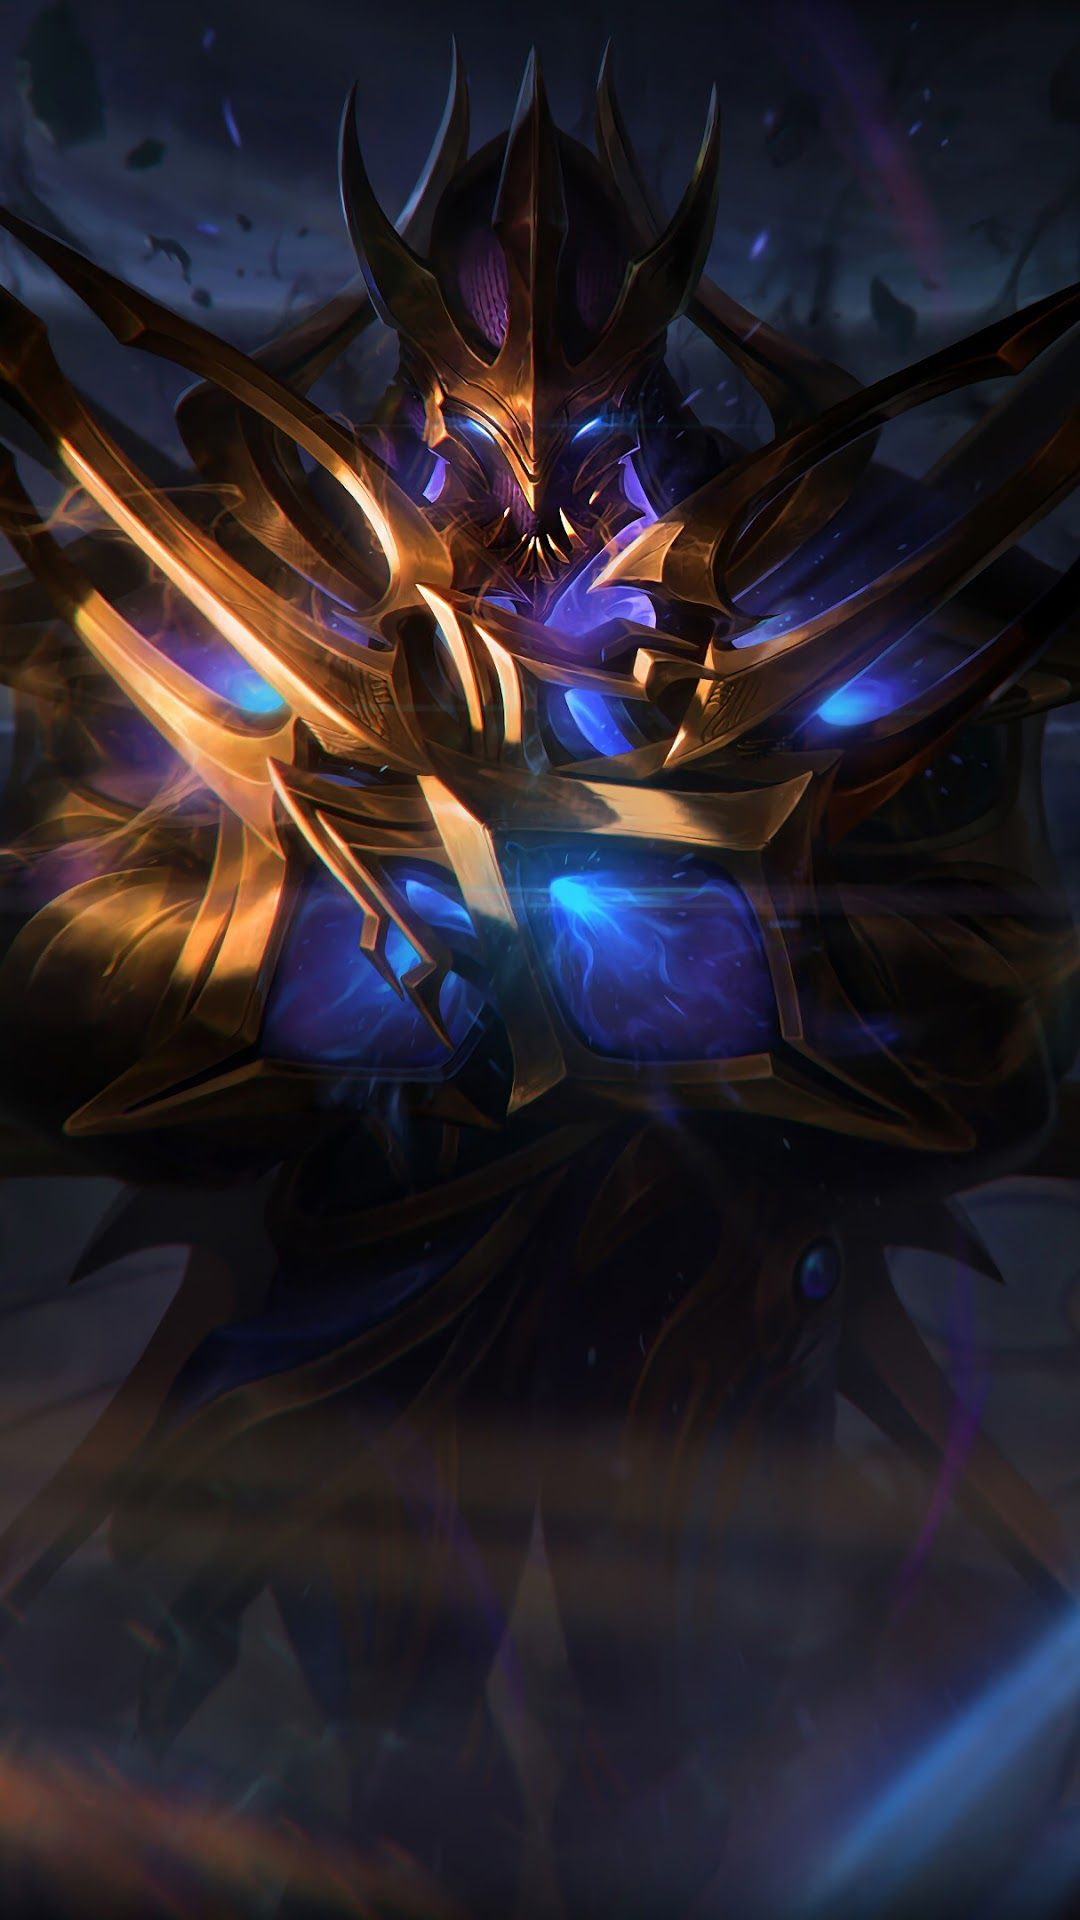 Download League Of Legends Wallpaper Iphone On High Quality Wallpaper On Hdwallpaper9 Co In 2020 League Of Legends Characters League Of Legends League Of Legends Yasuo